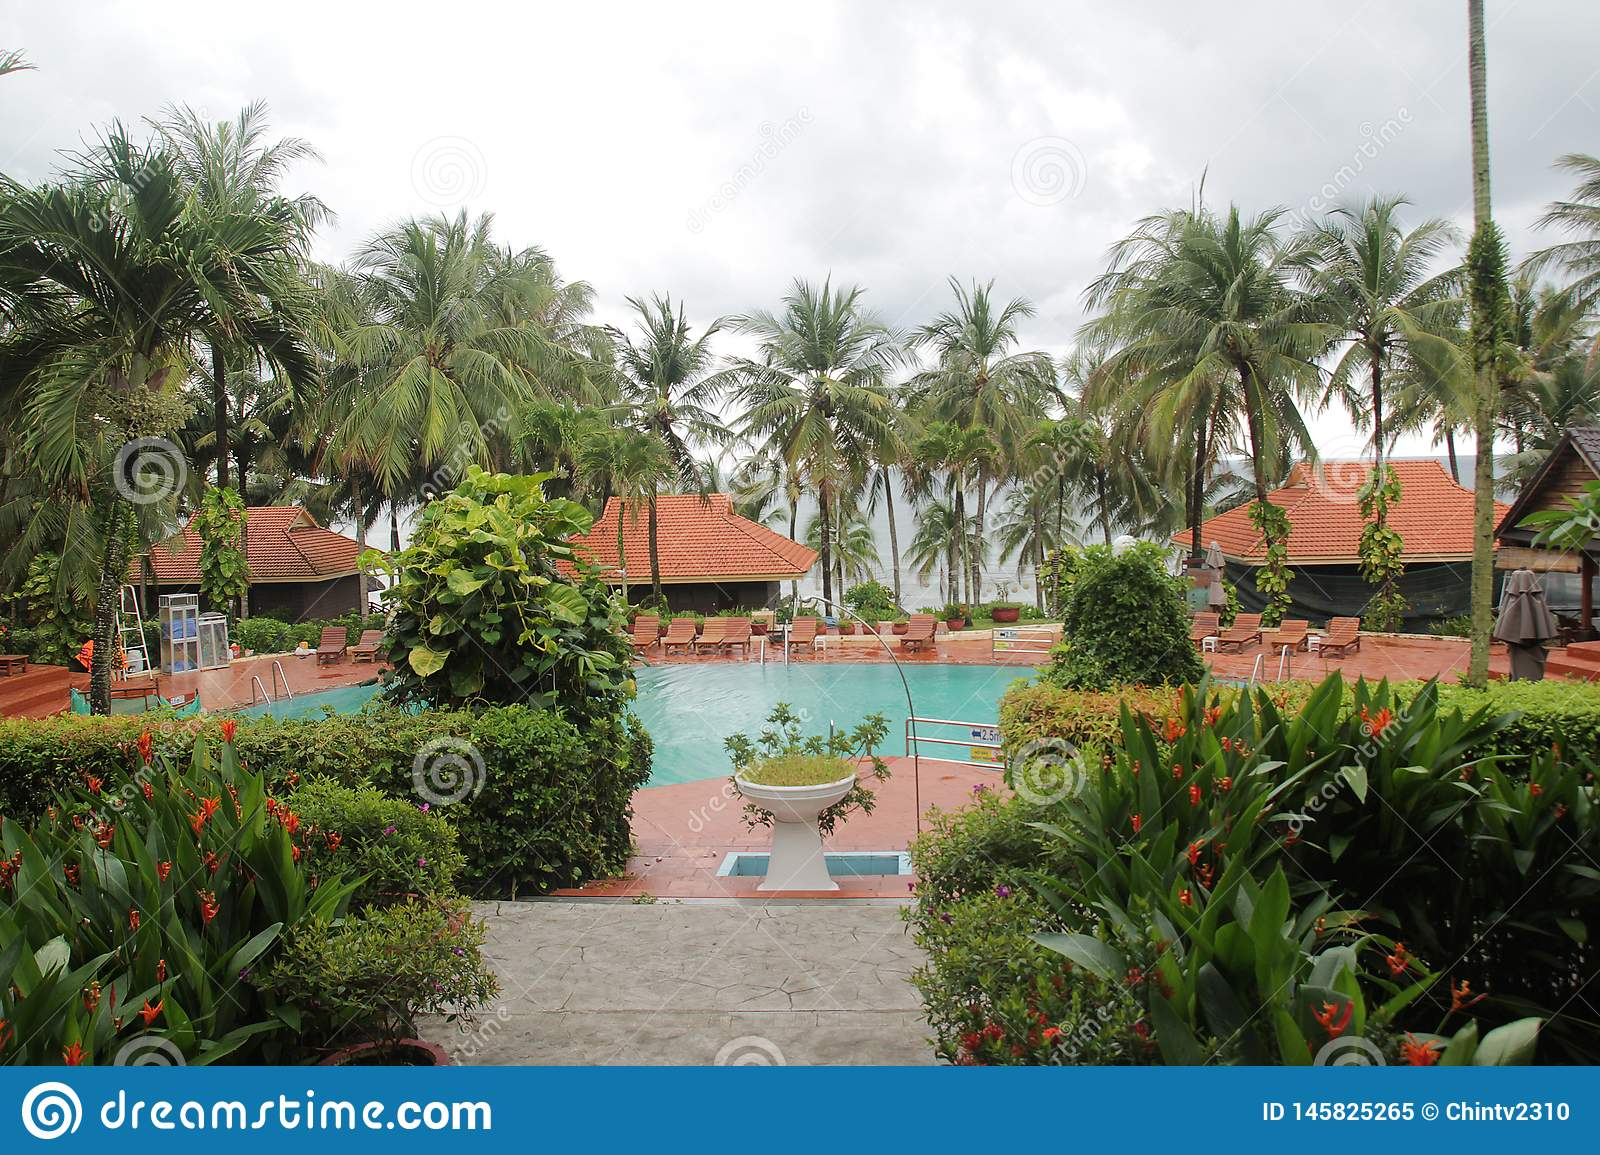 Beautiful landscape with swimming pool and coconut trees around